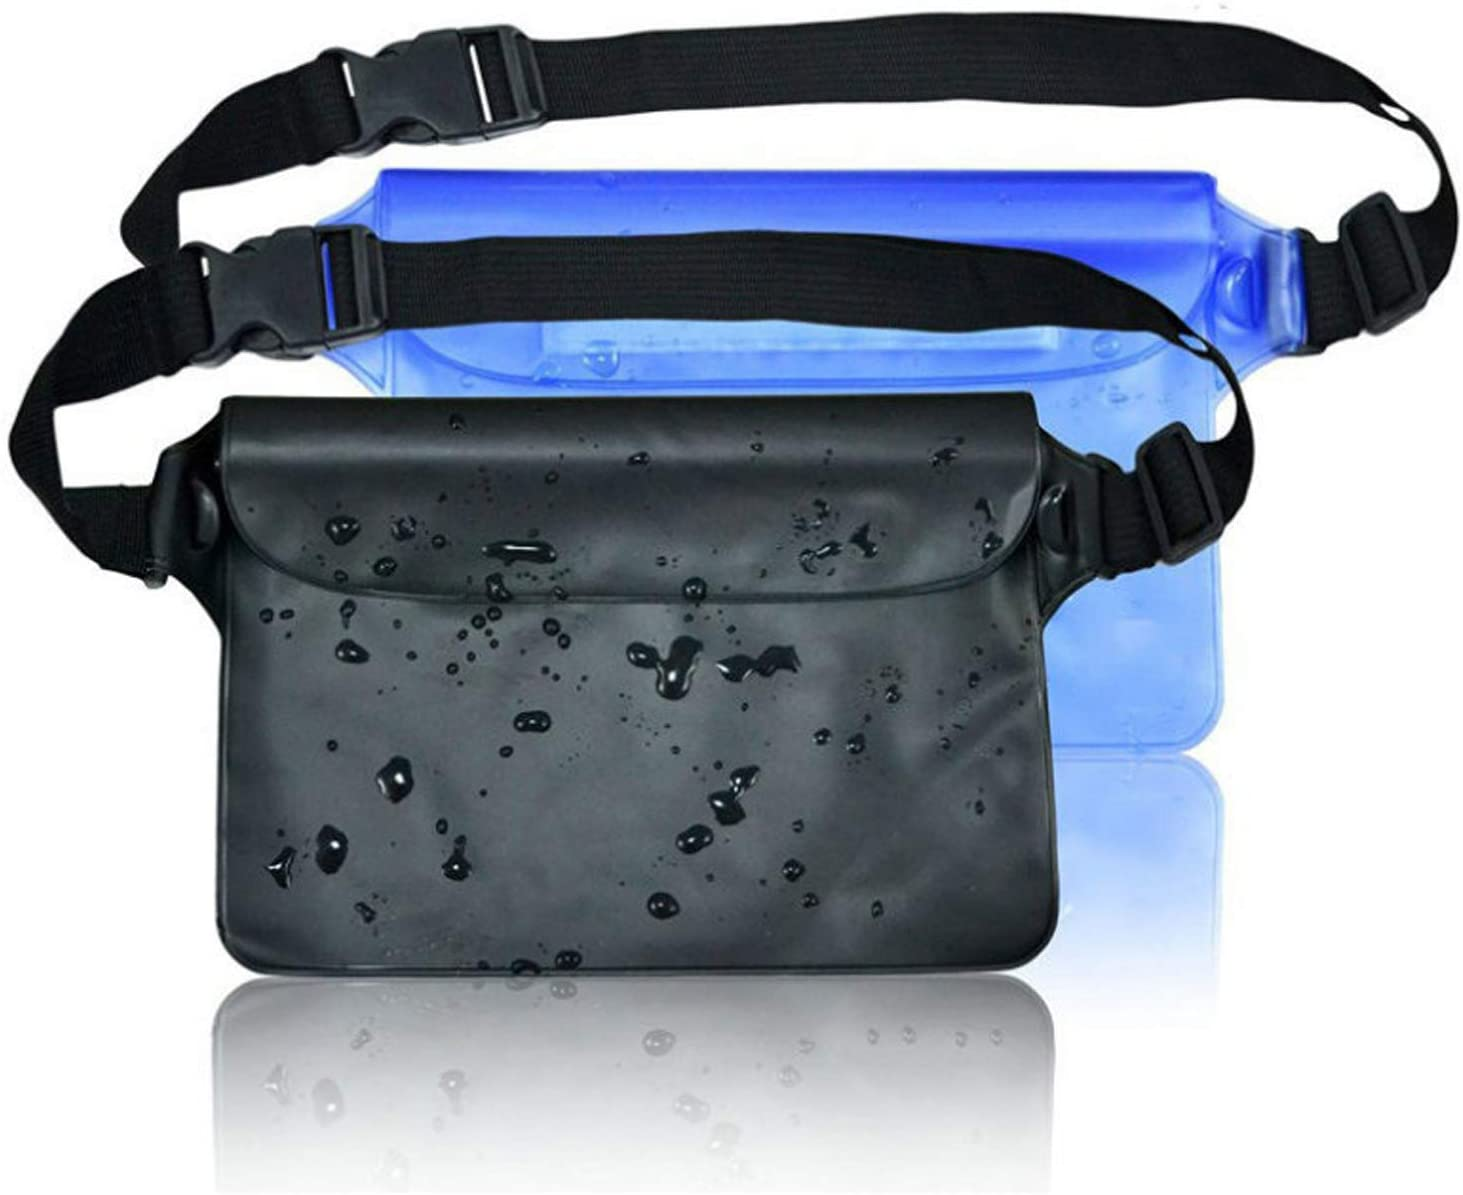 No/Brand Multifunctional Waterproof Bag with Adjustable Waist Strap 2 Packs Transparent Screen Touchable Dry Bag for Snorkeling Kayaking Swimming Fishing Skiing Hiking